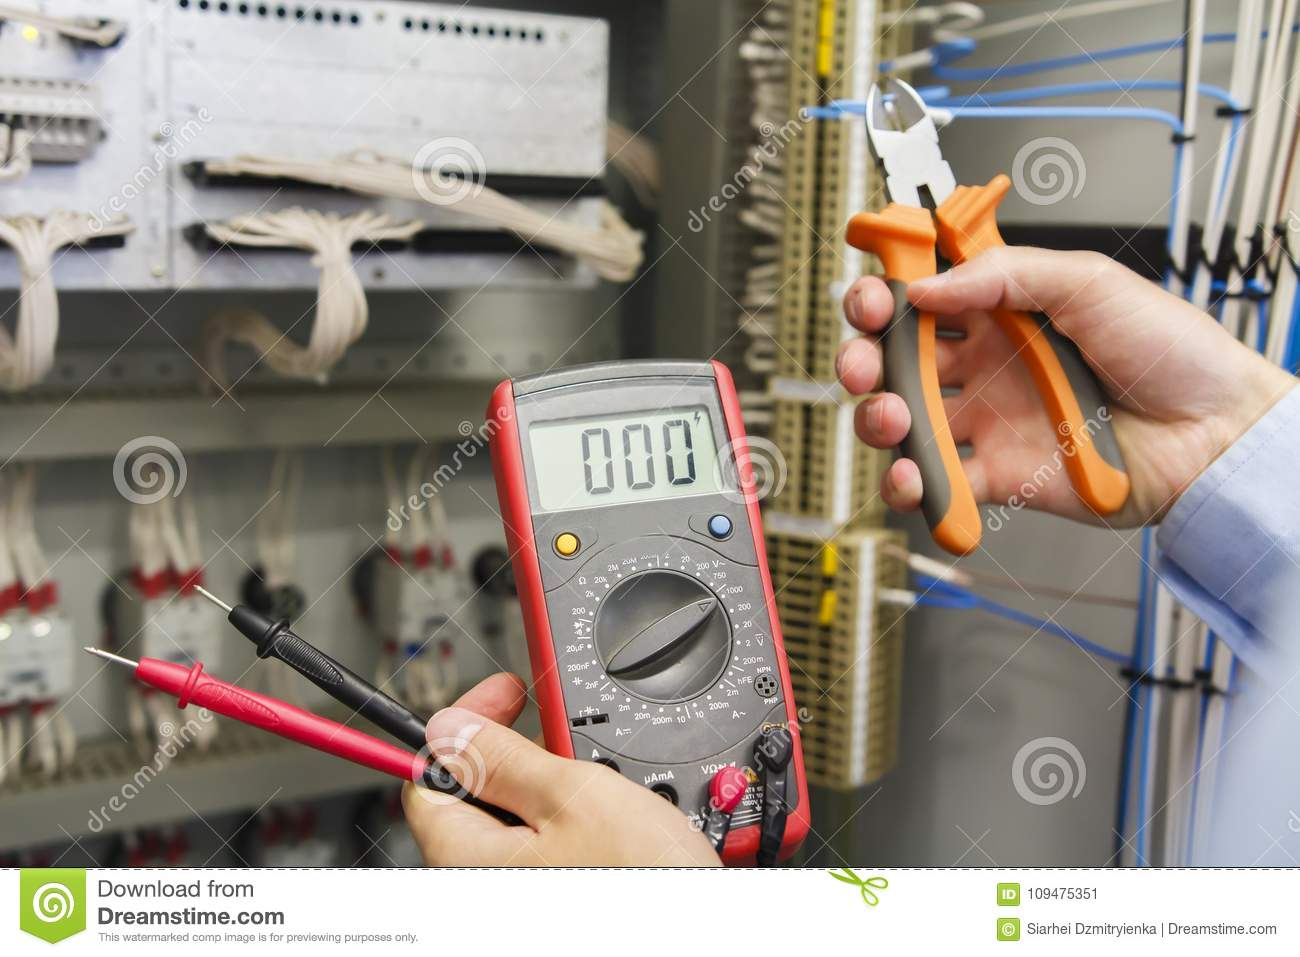 hight resolution of tester and wire cutters in hands of electrician against electric control panel of automation equipment